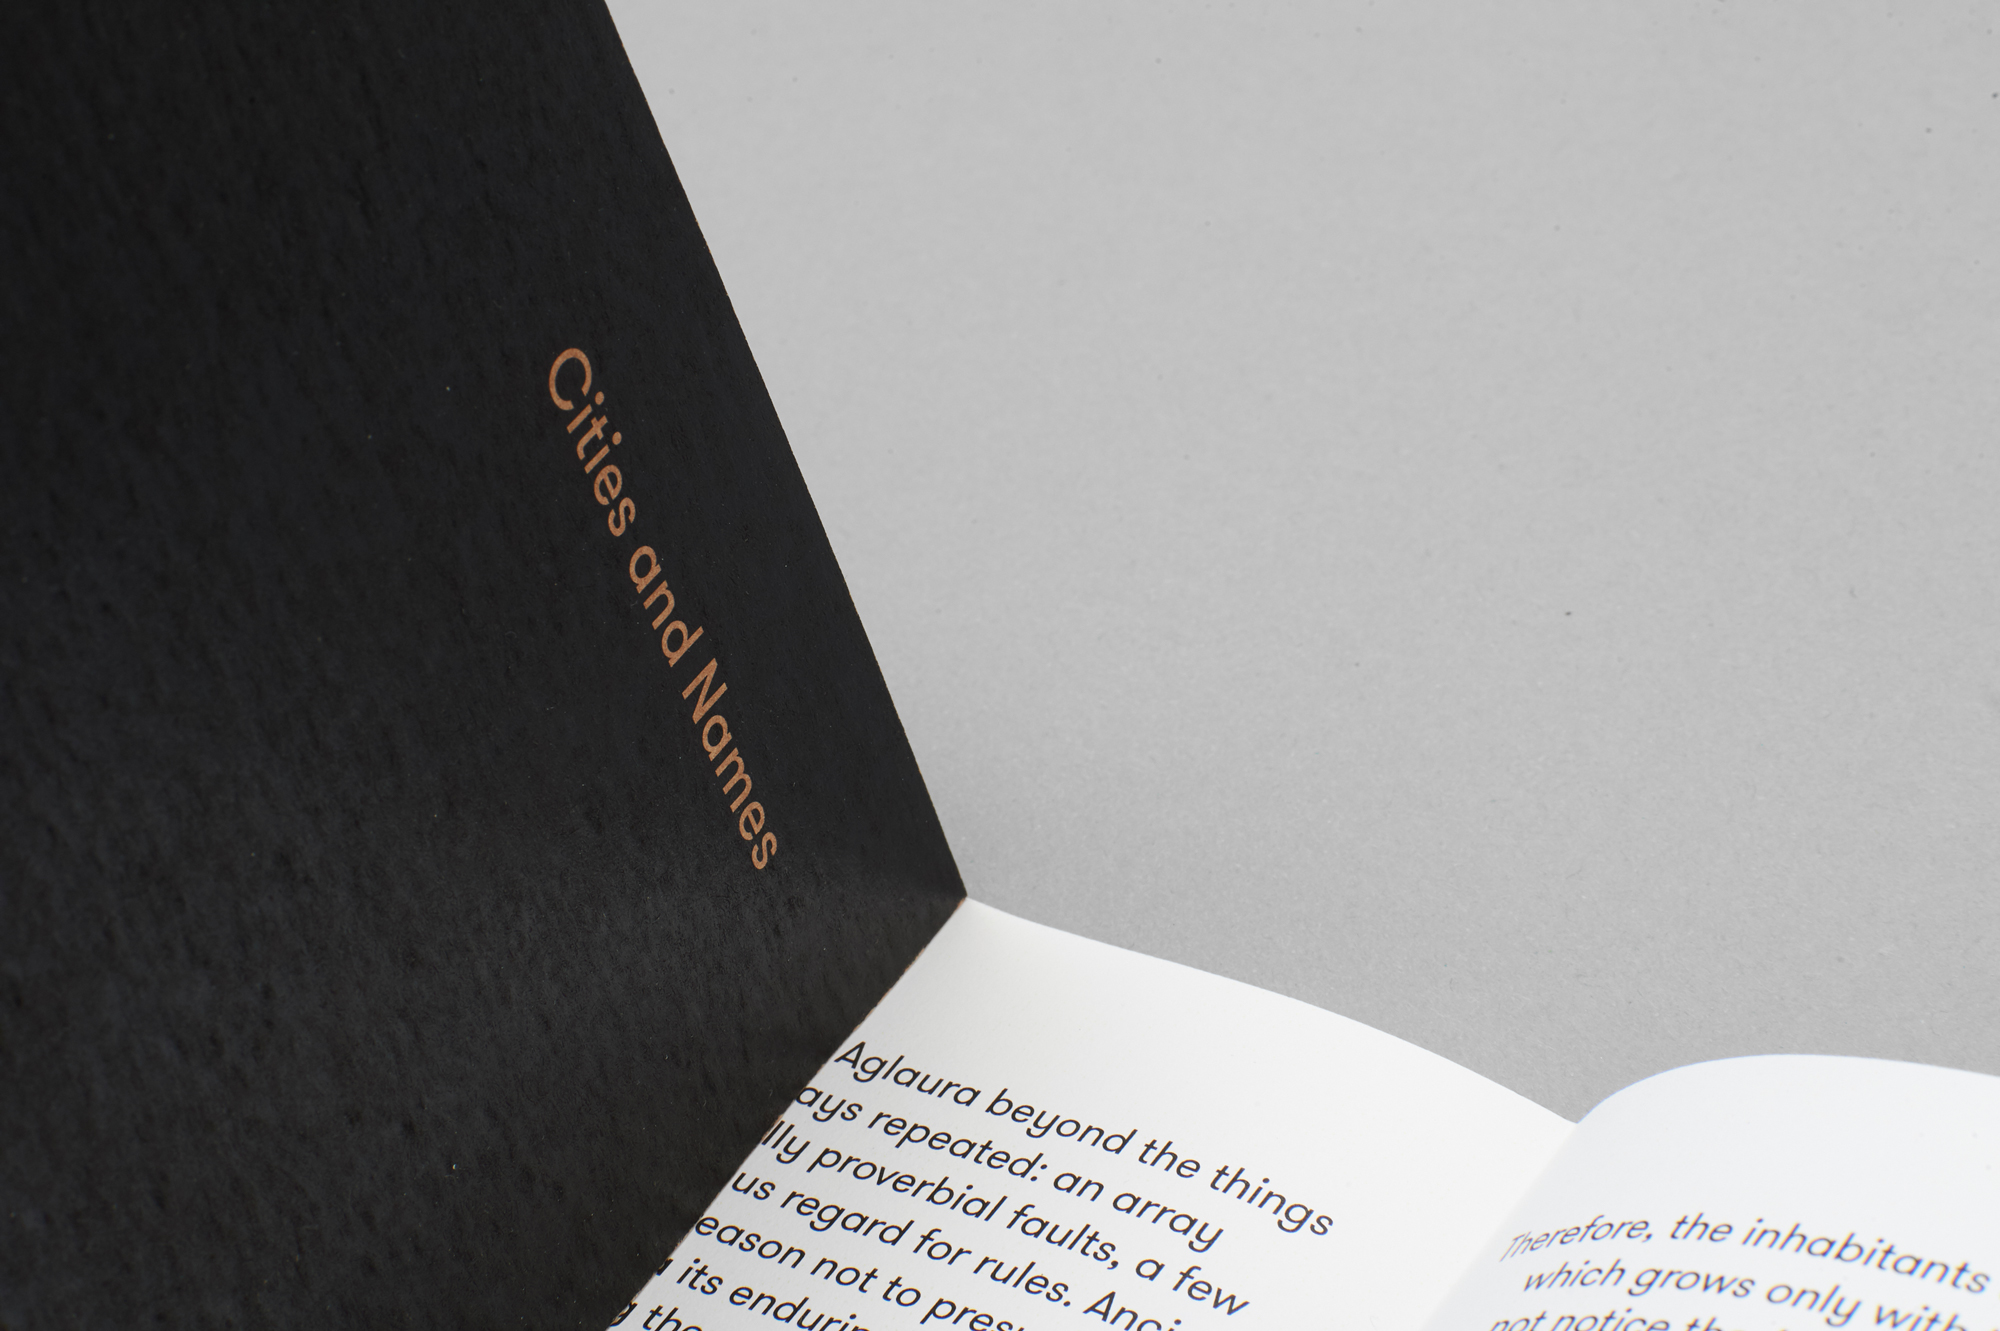 Elegant Editorial Design Project: Cities and Names